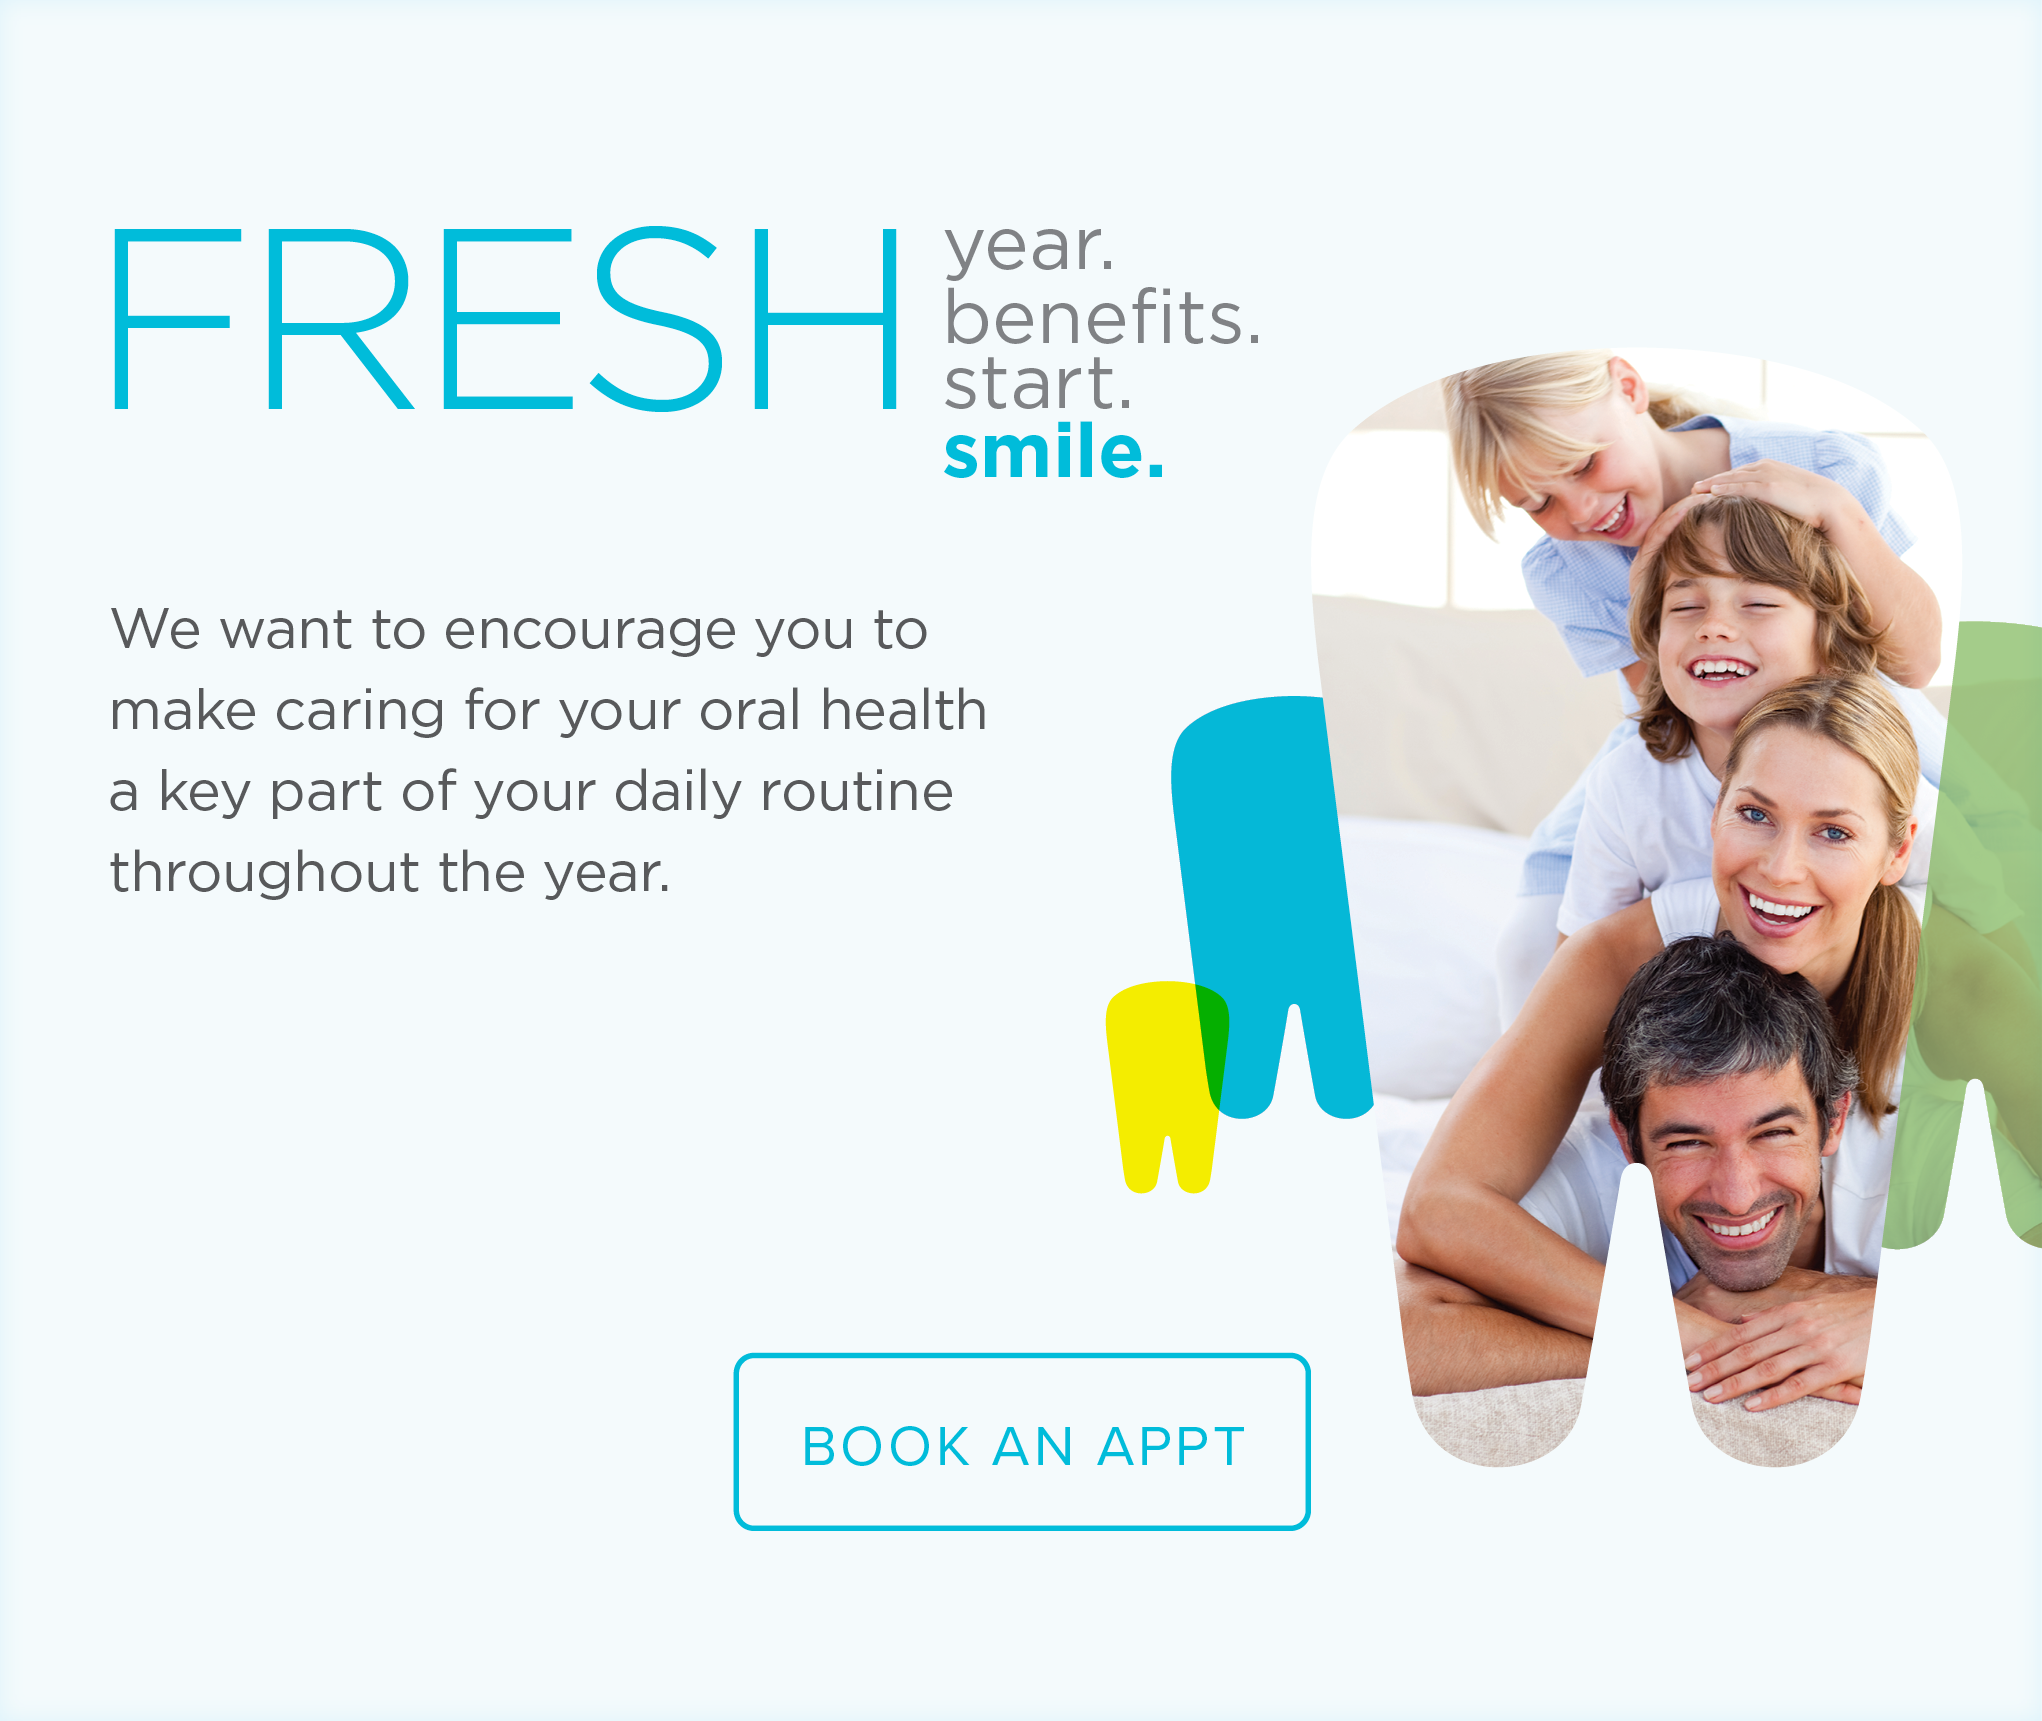 Triangle Dental Group and Orthodontics - Make the Most of Your Benefits